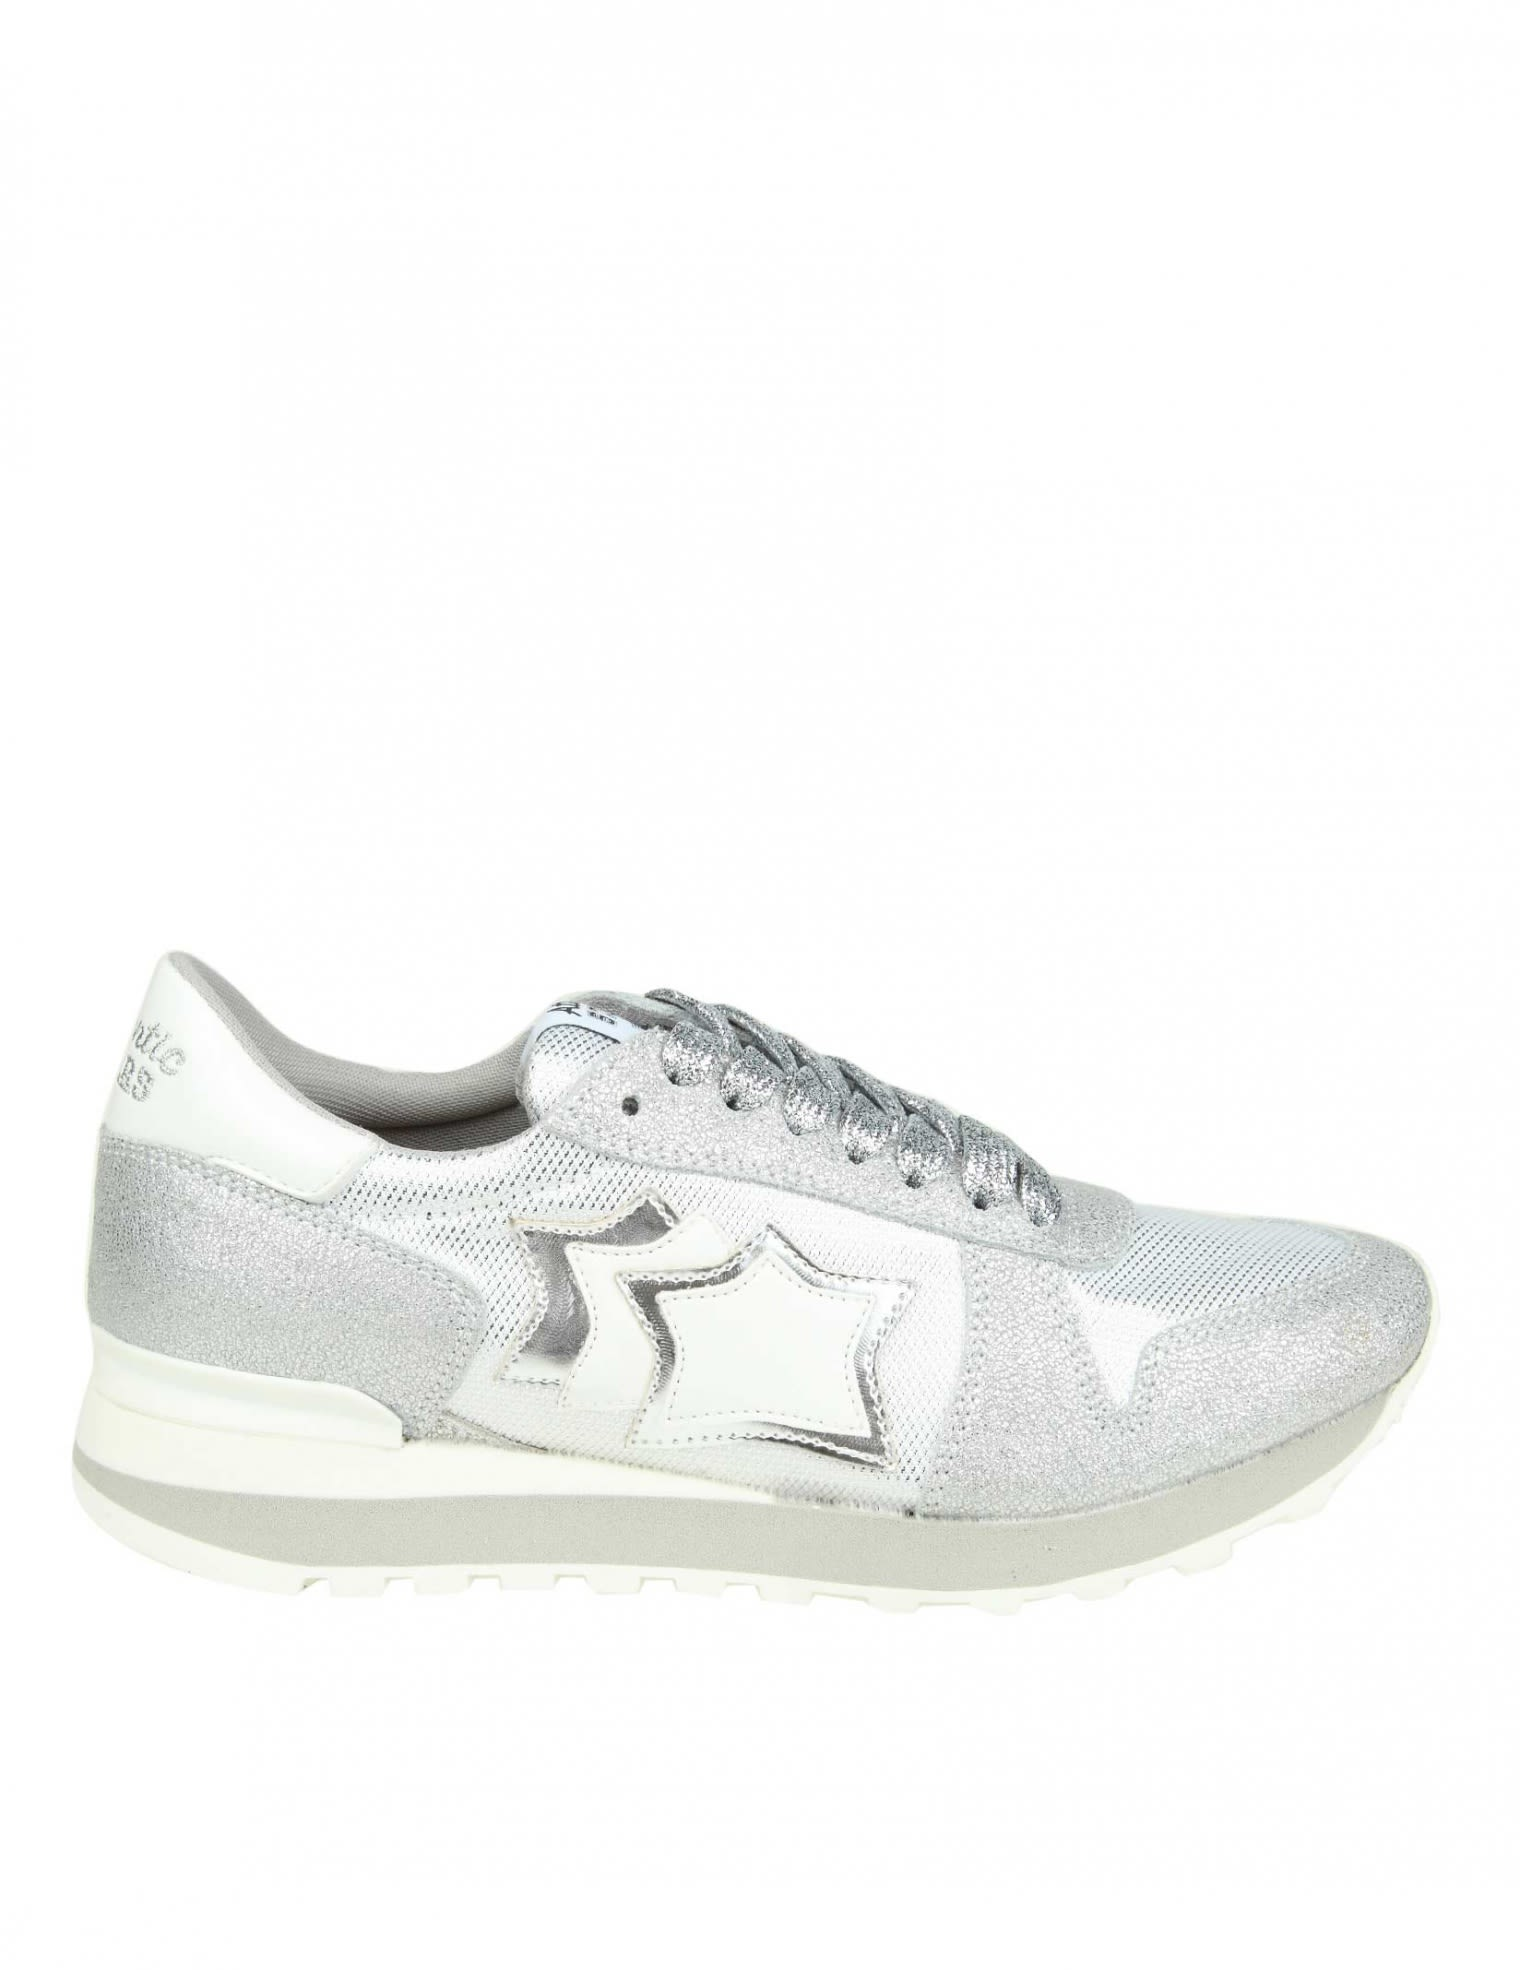 Atlantic Stars ALHENA SNEAKERS IN SILVER LEATHER AND FABRIC